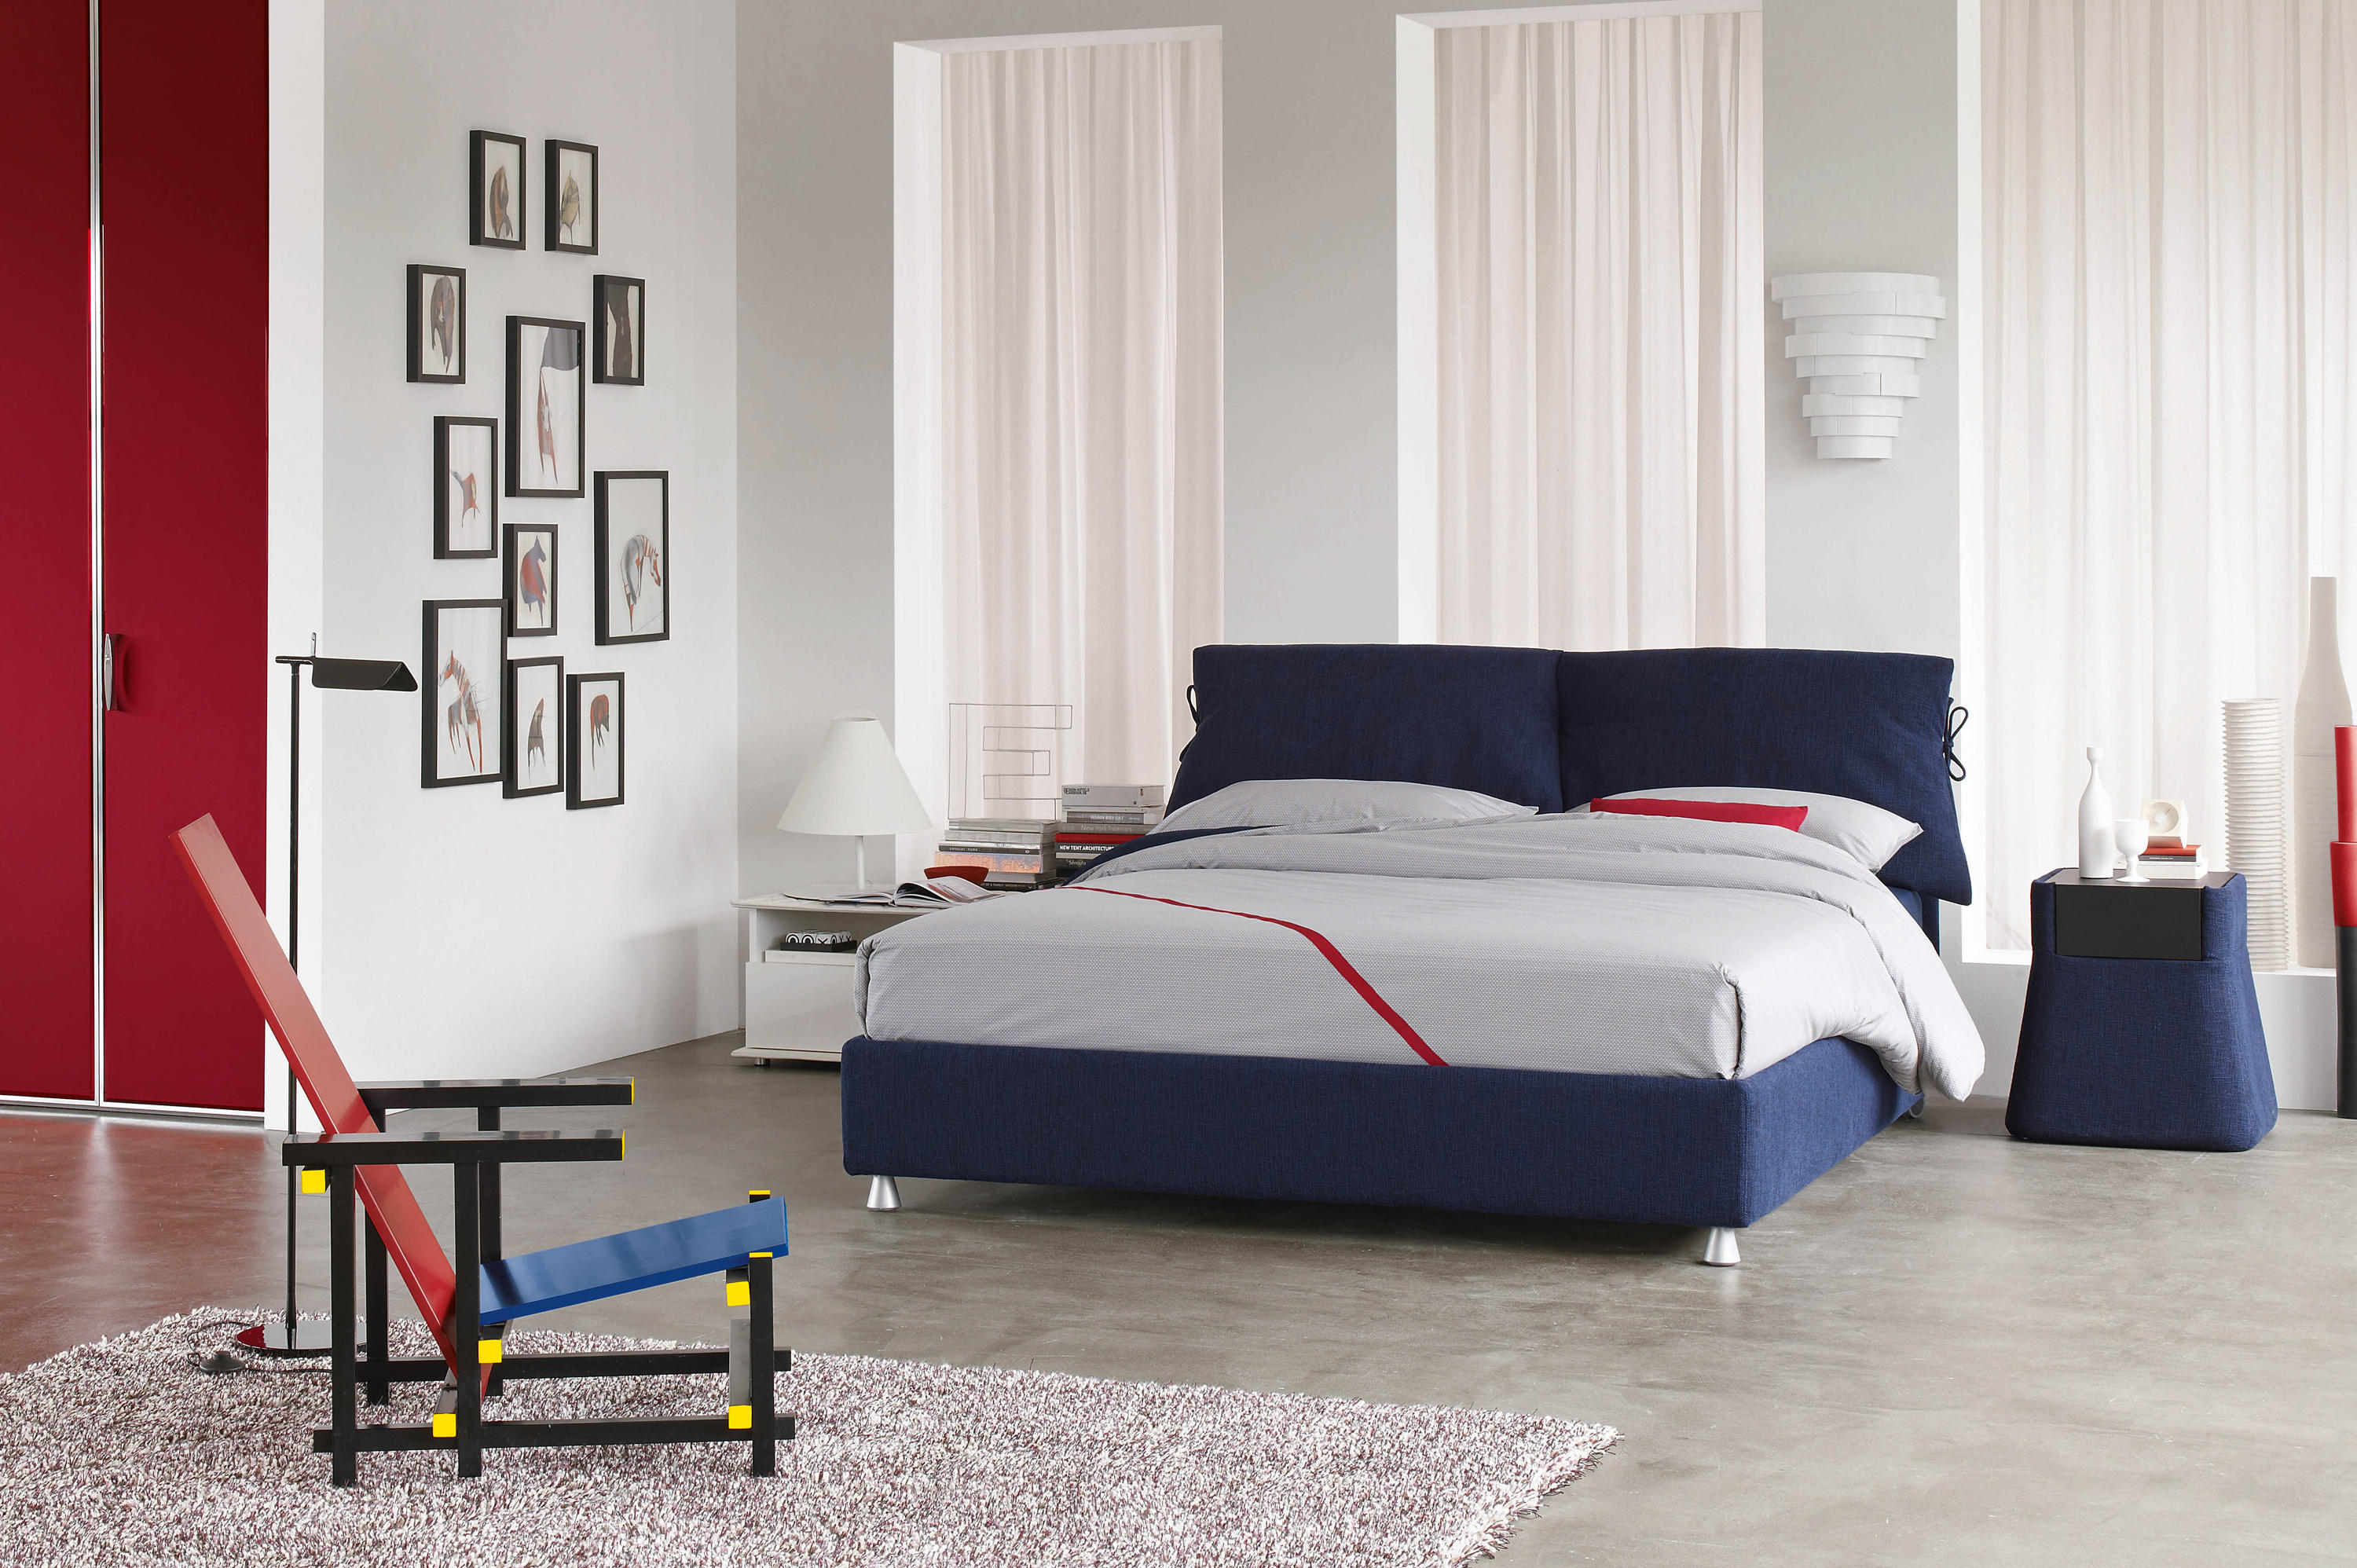 Nathalie bed beds from flou architonic - Letto flou prezzi ...